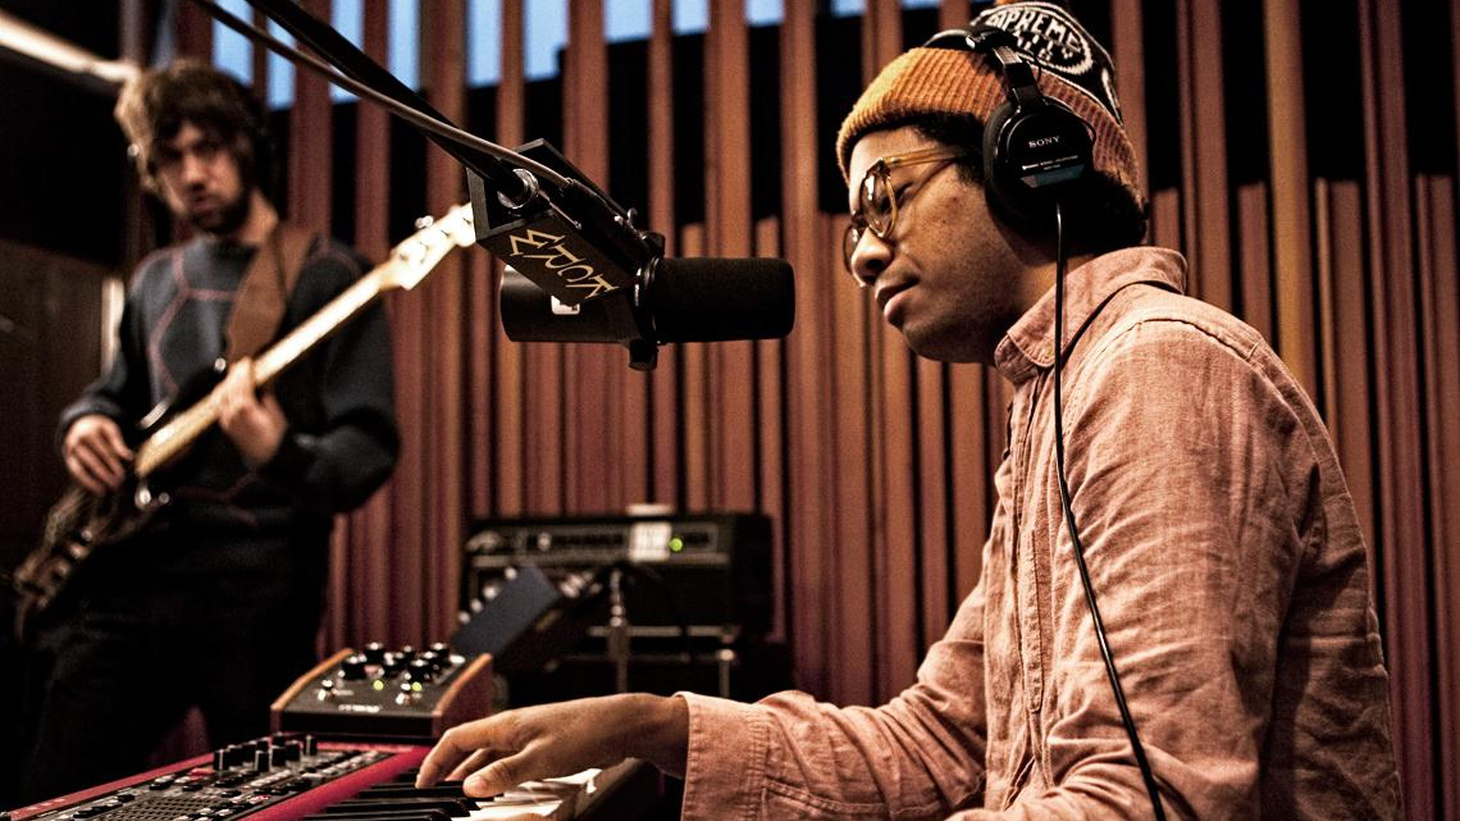 Toro y Moi's latest album has been at the top of KCRW's charts for weeks now...